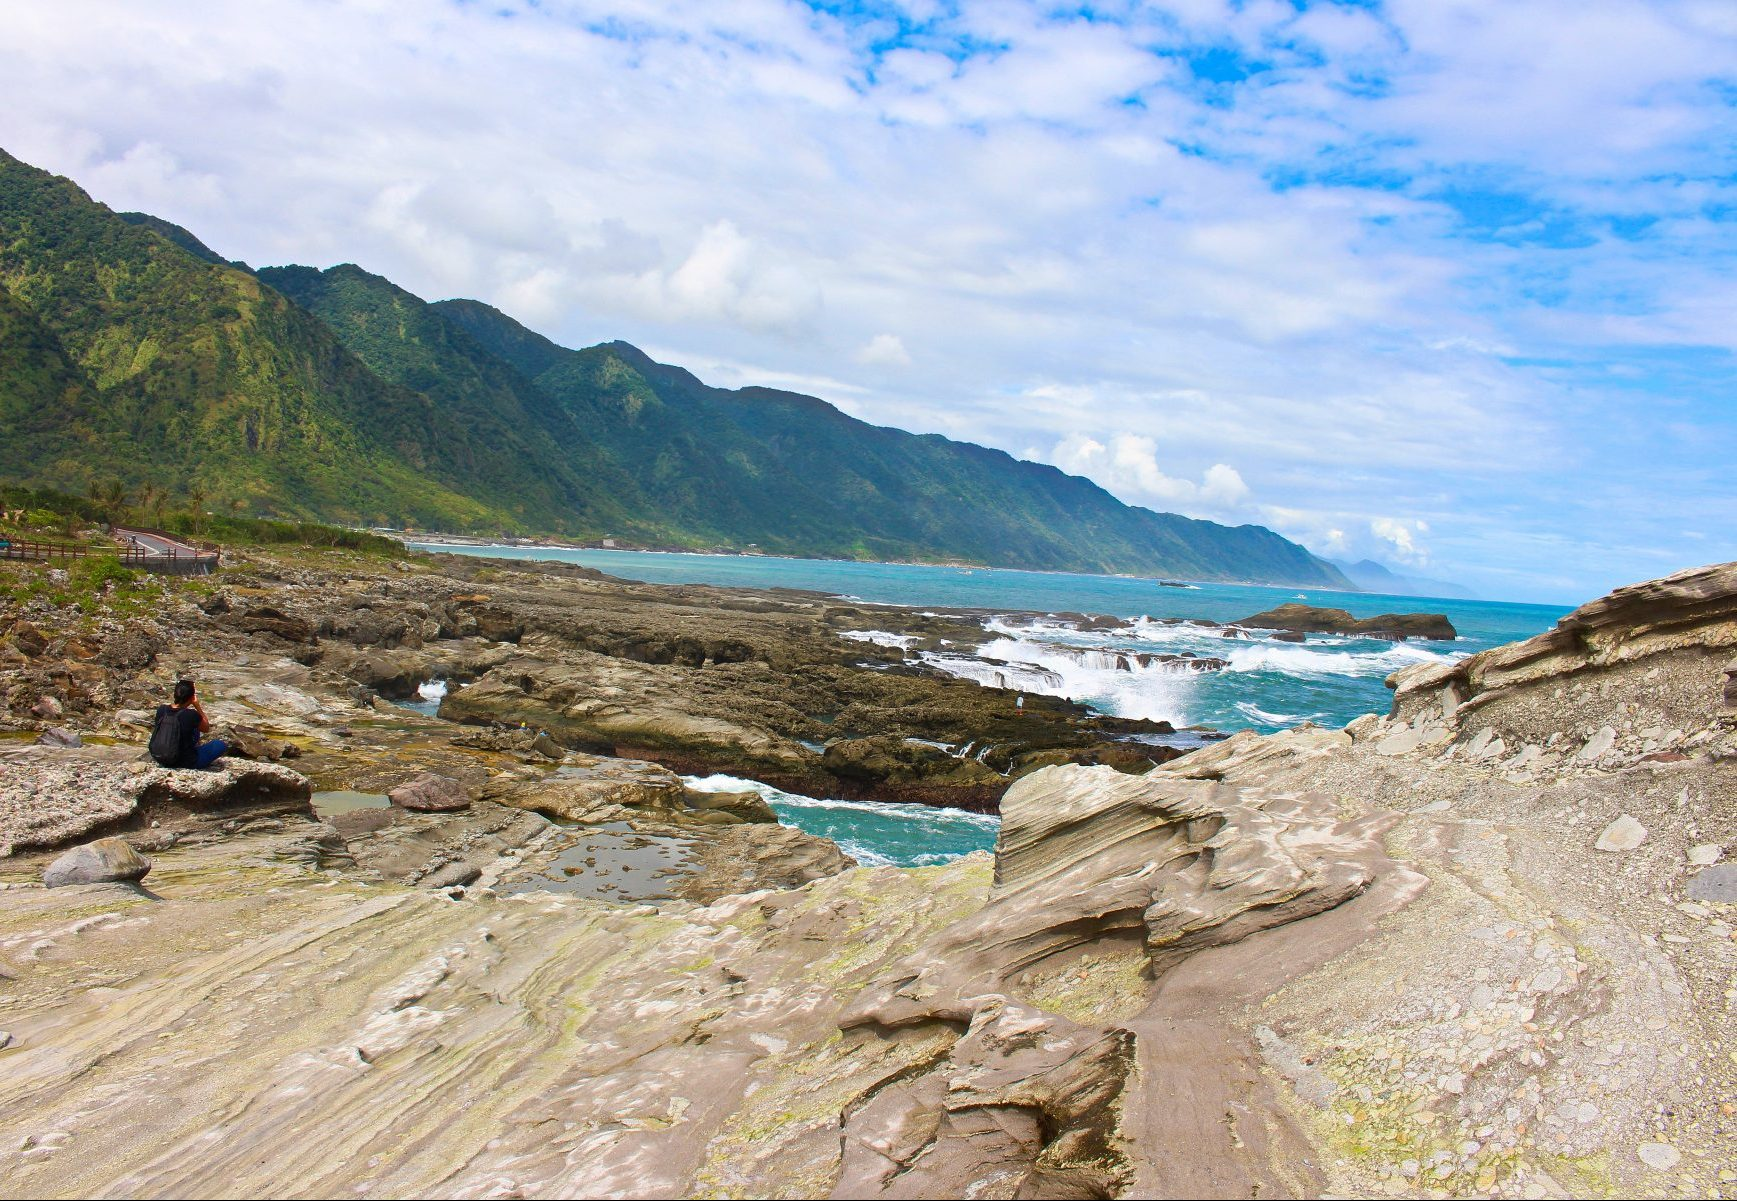 Shihtiping, one of the best things to do in Hualien, Taiwan